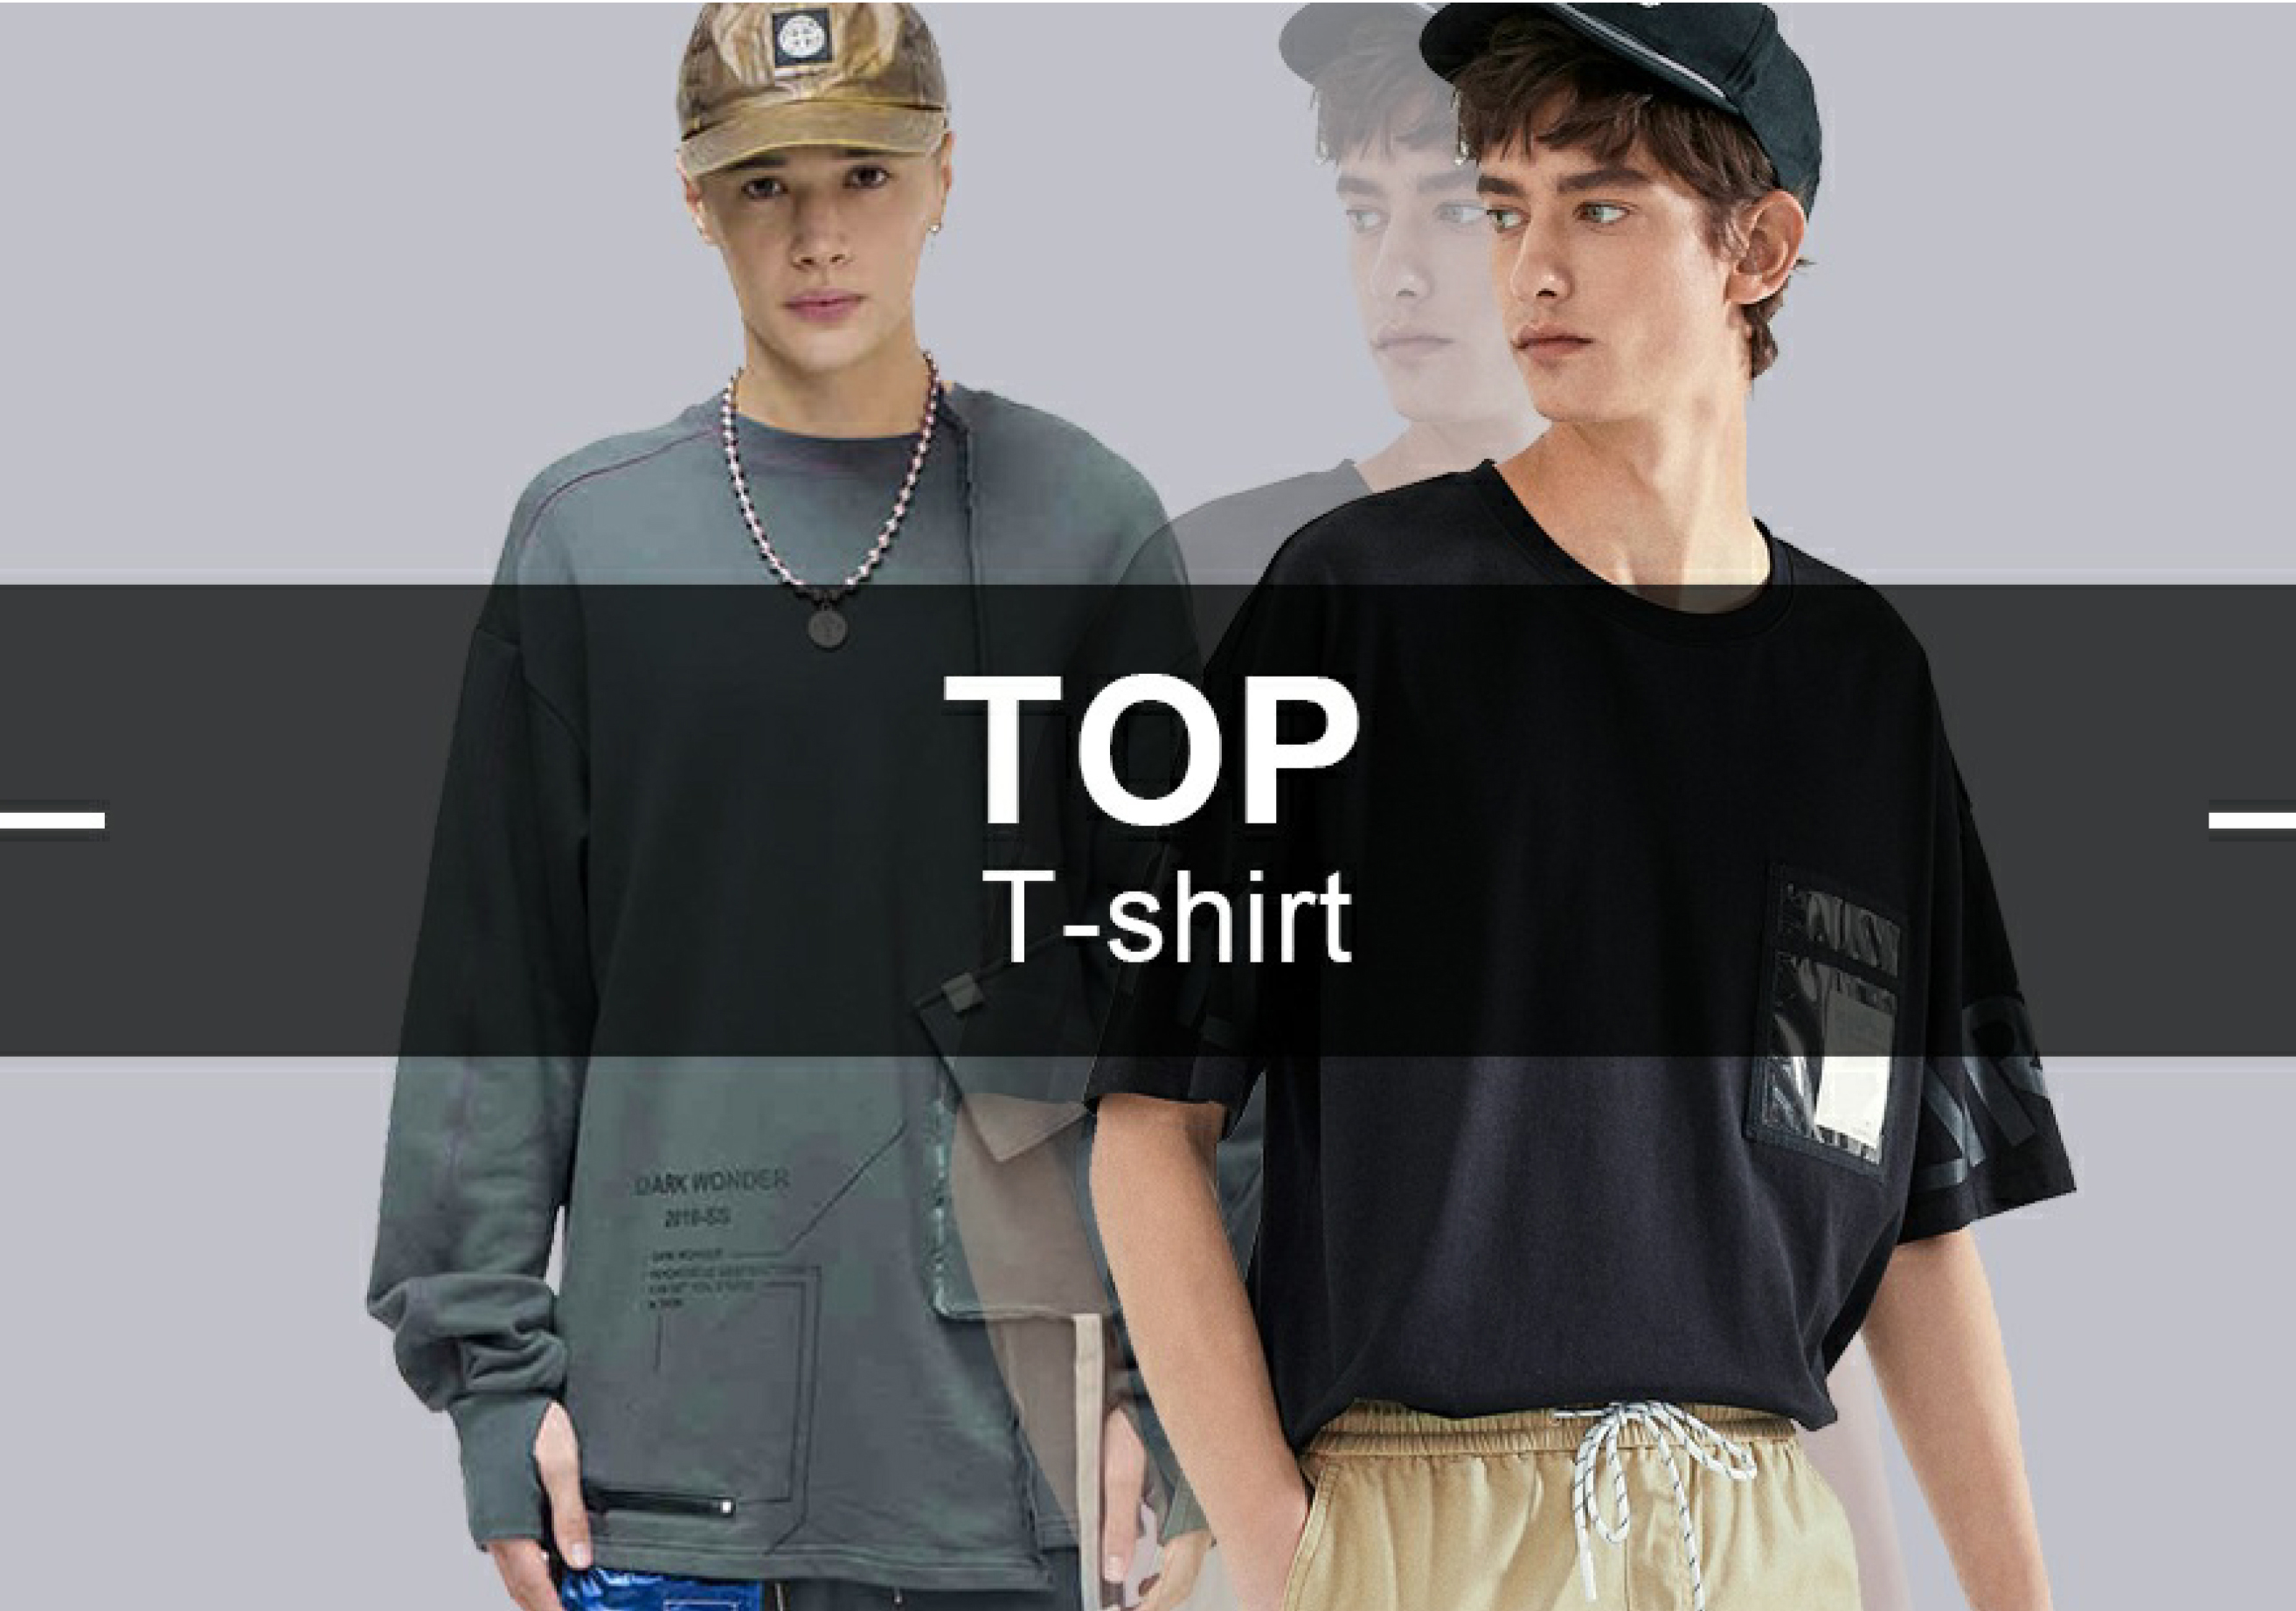 T-Shirt -- 2019 Resort Recommended Hot Items in Menswear Market